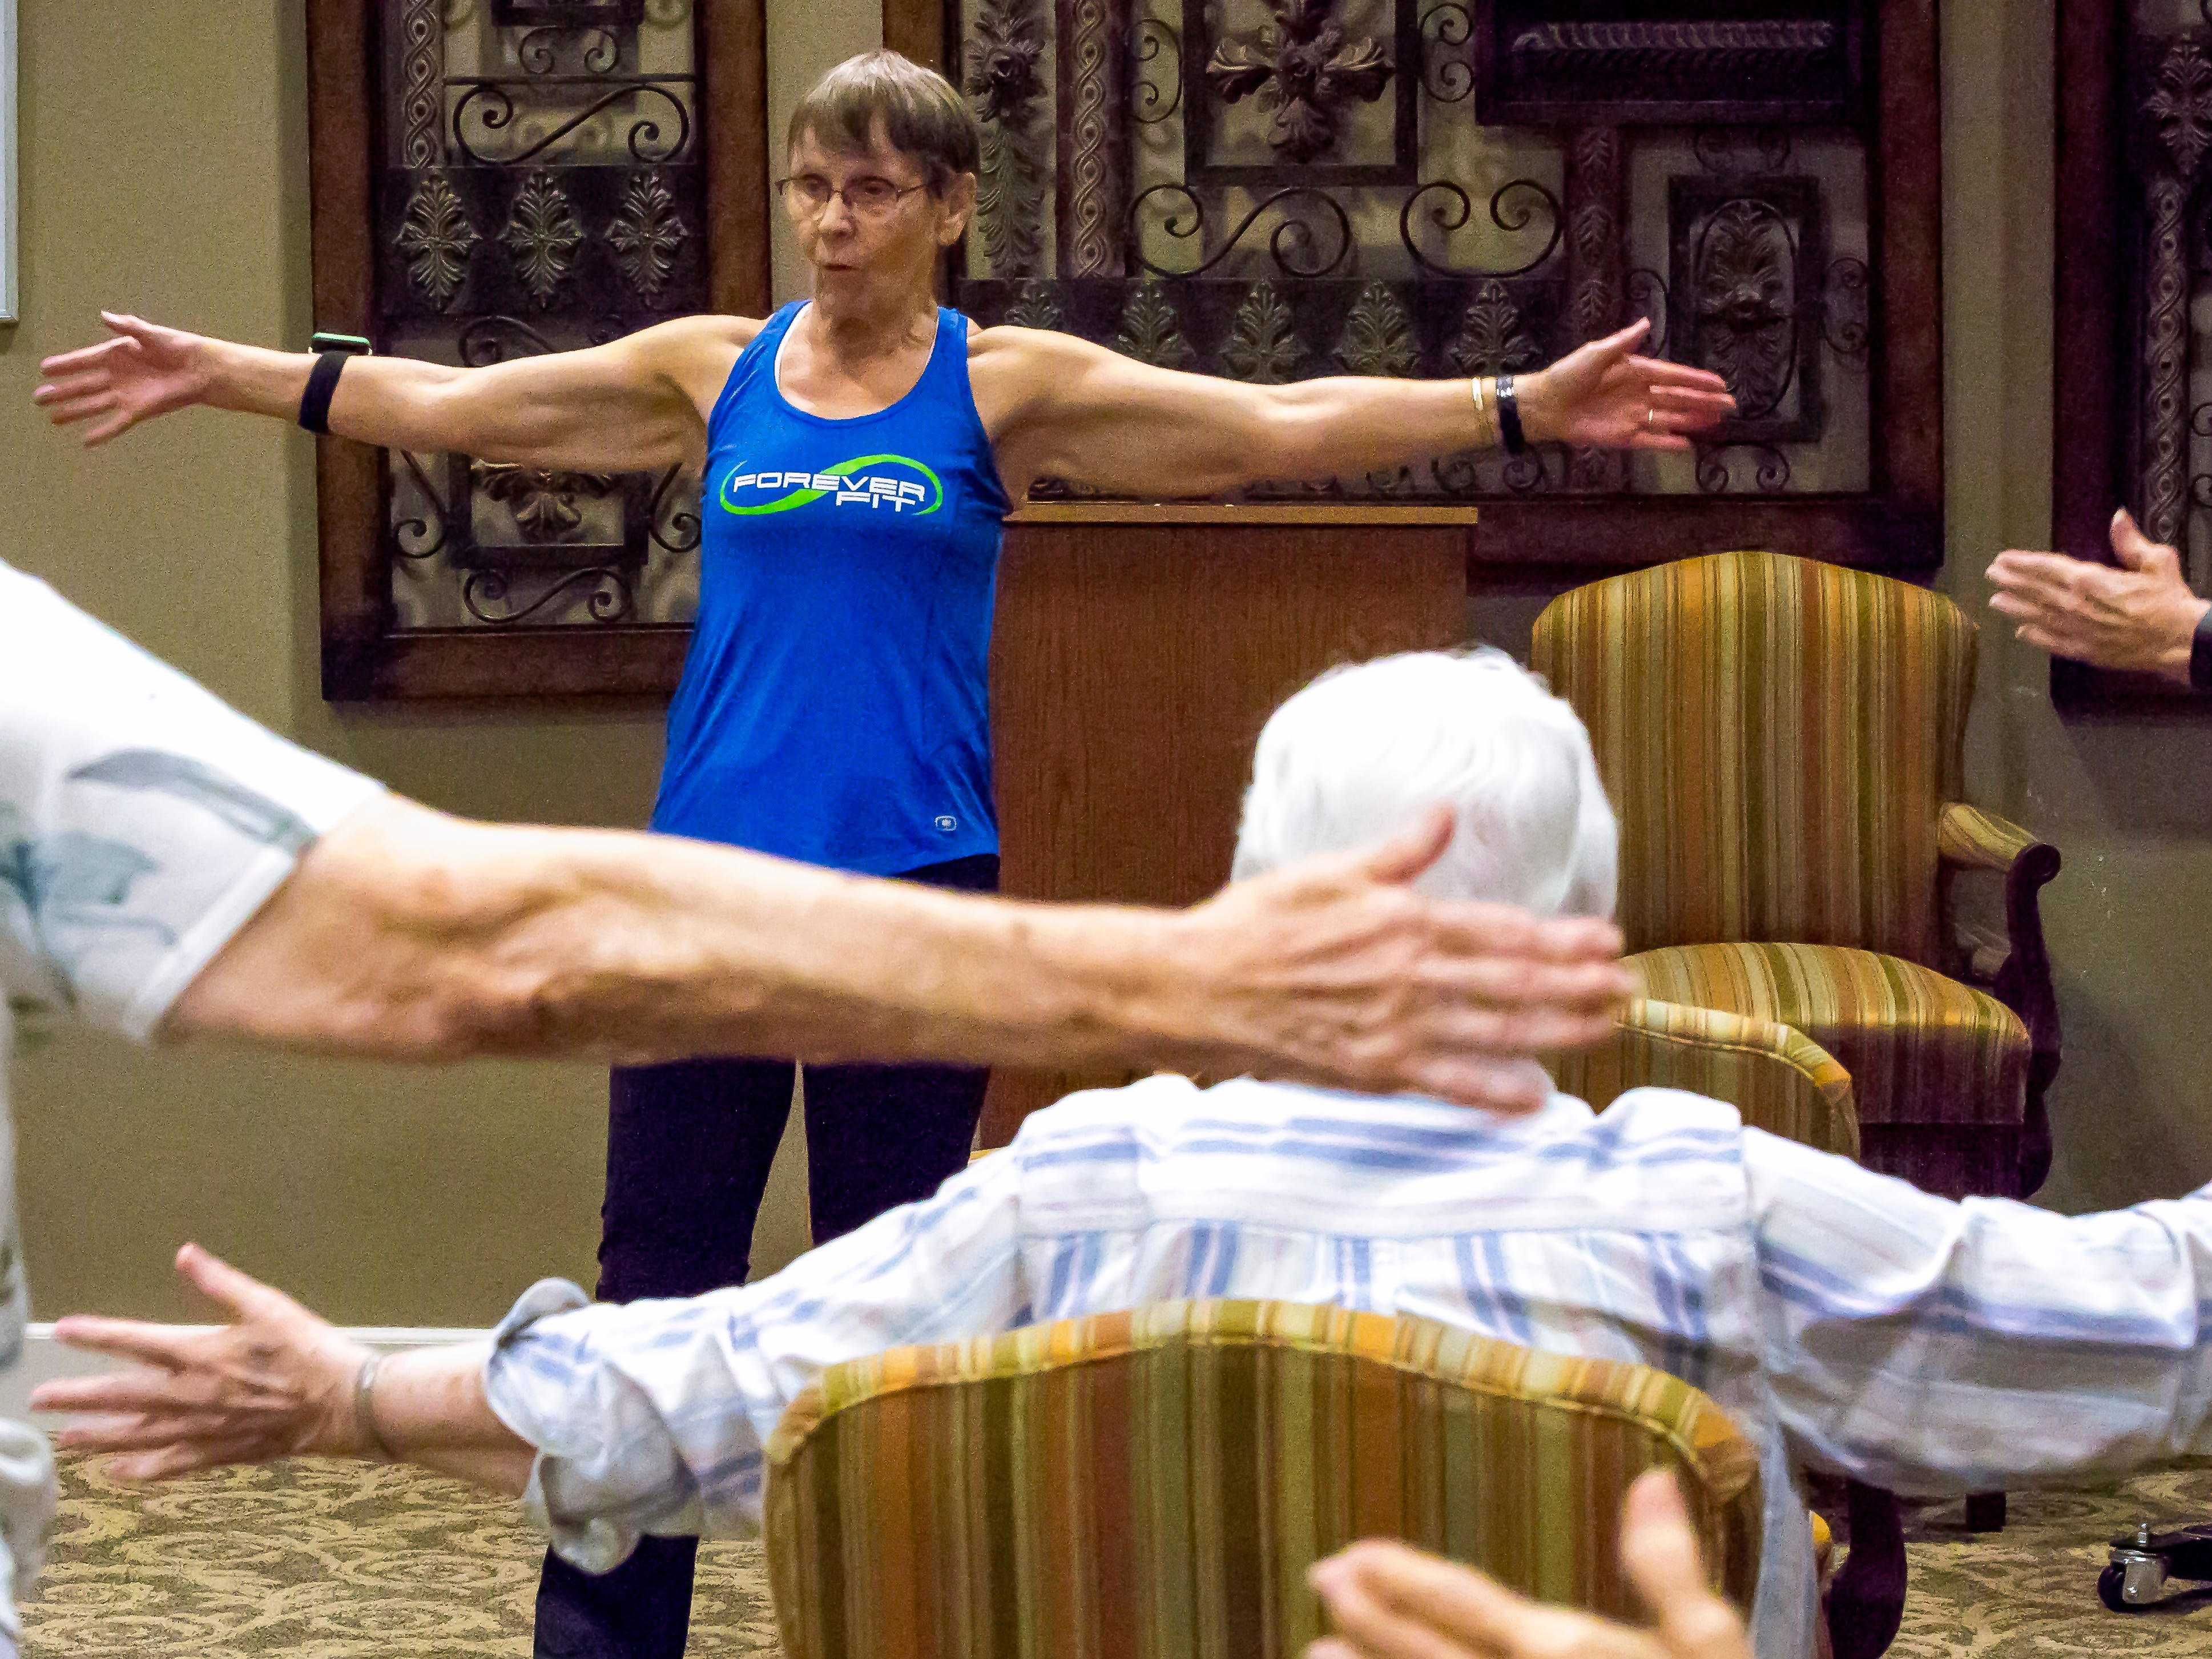 Betty Lou Sweeney leads a fitness class for elderly residents of the Brookdale assisted living facility in Stevens Point, Wis., Tuesday, Sept. 18, 2018. Sweeney volunteers to run the class on a weekly basis.